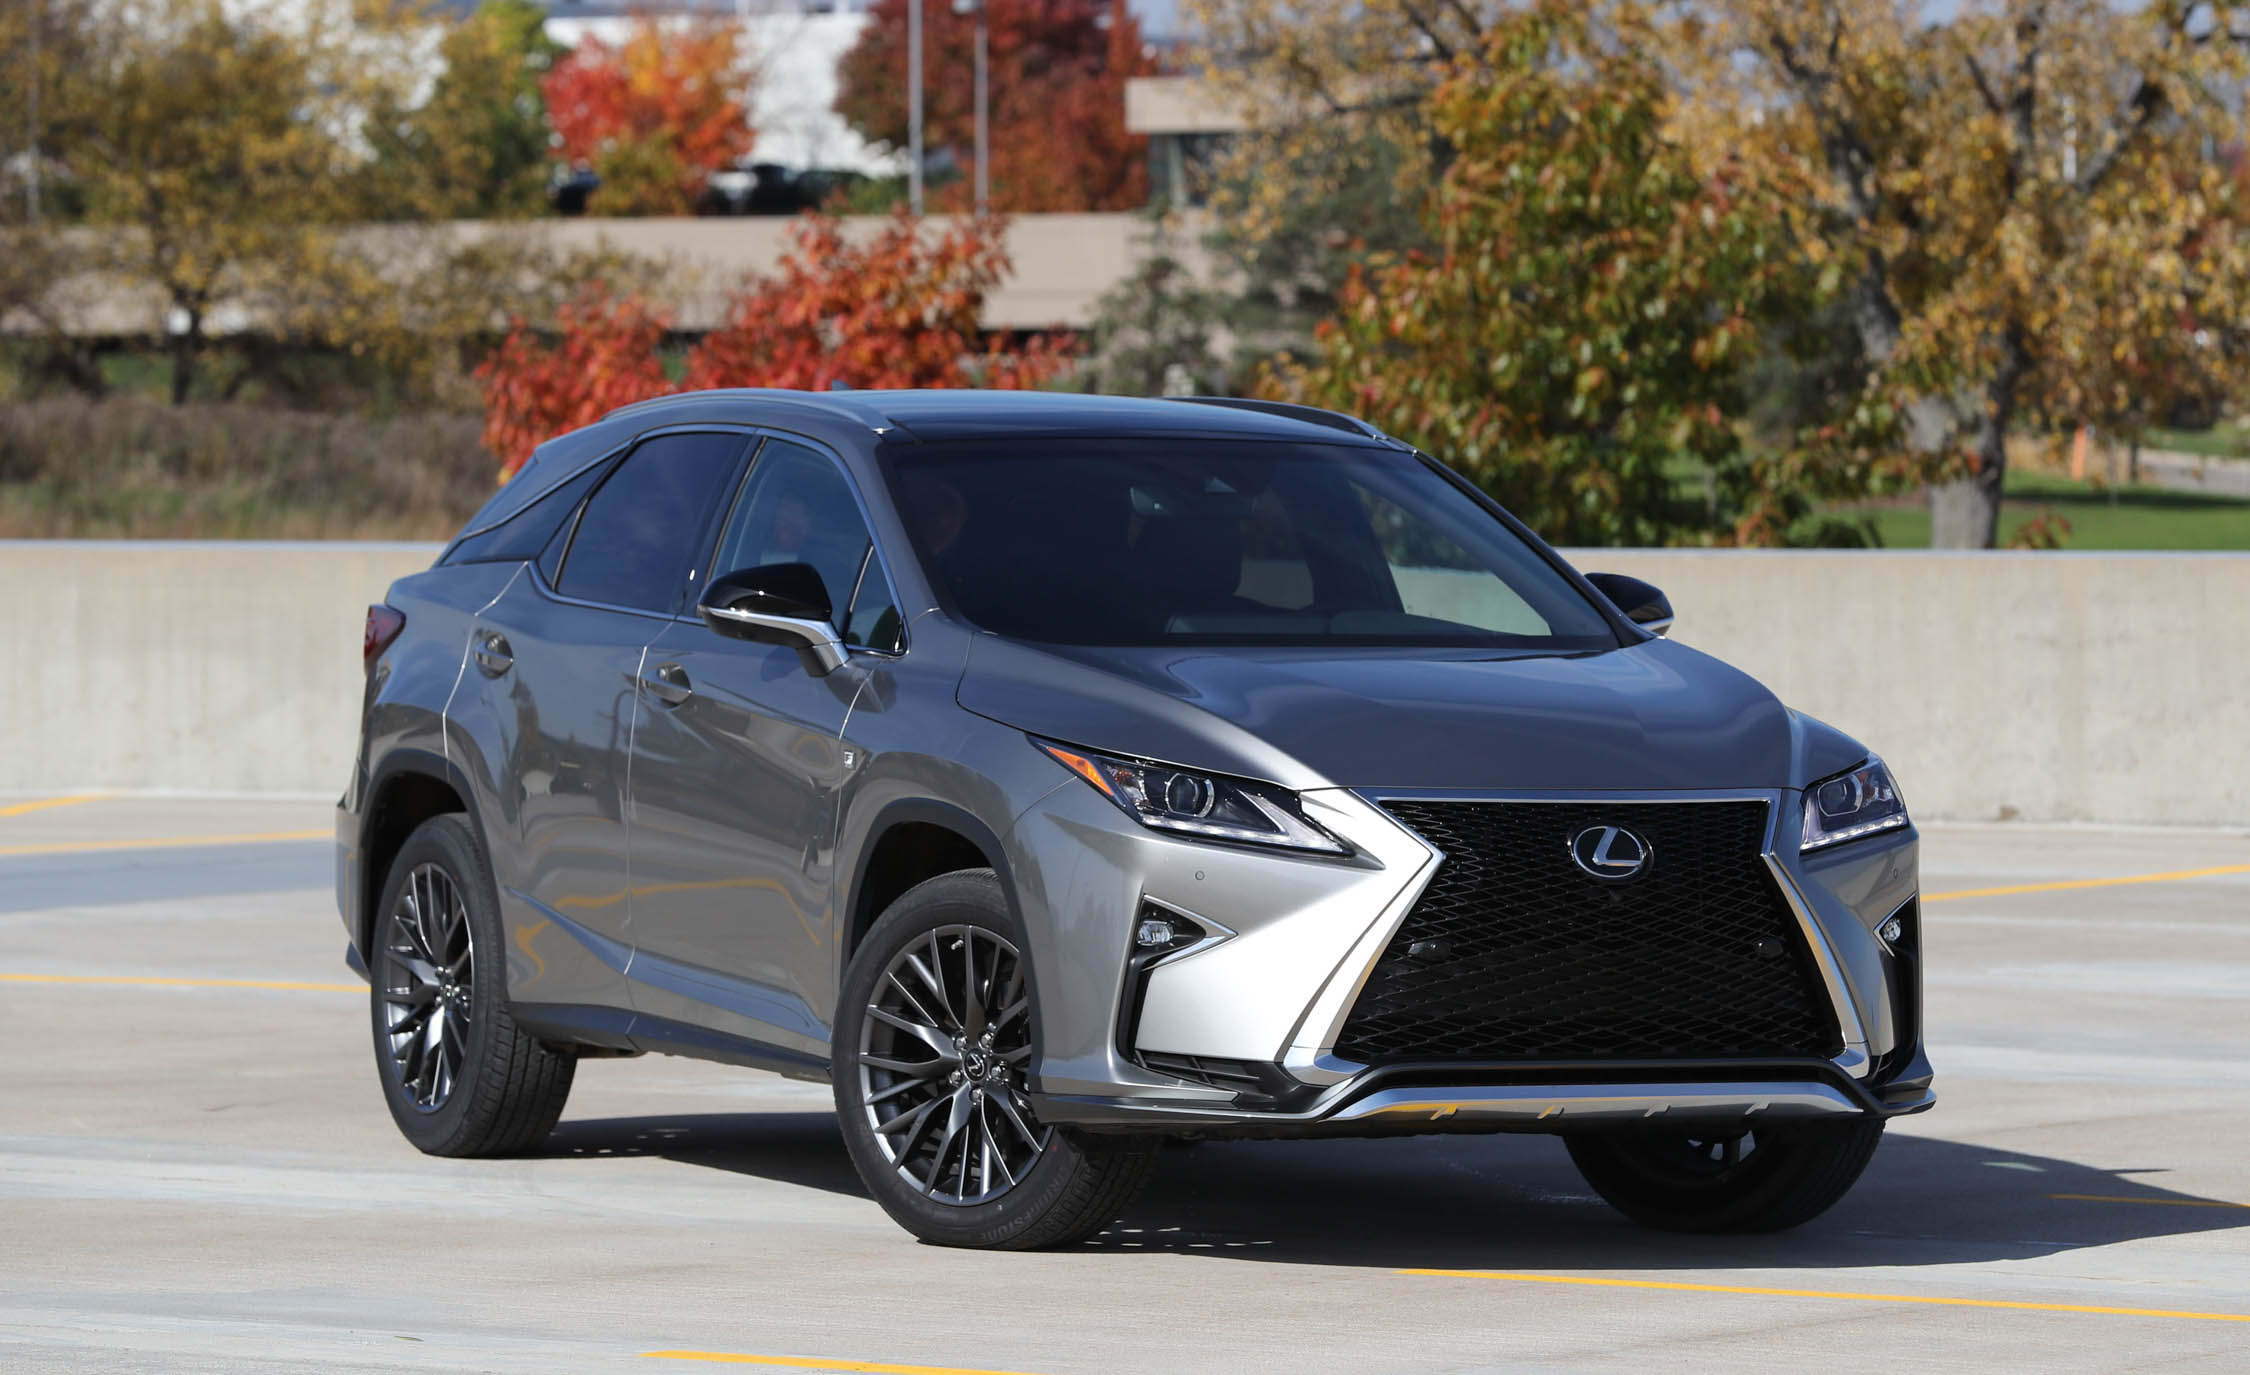 2017 Lexus RX350 F Sport (View 3 of 35)